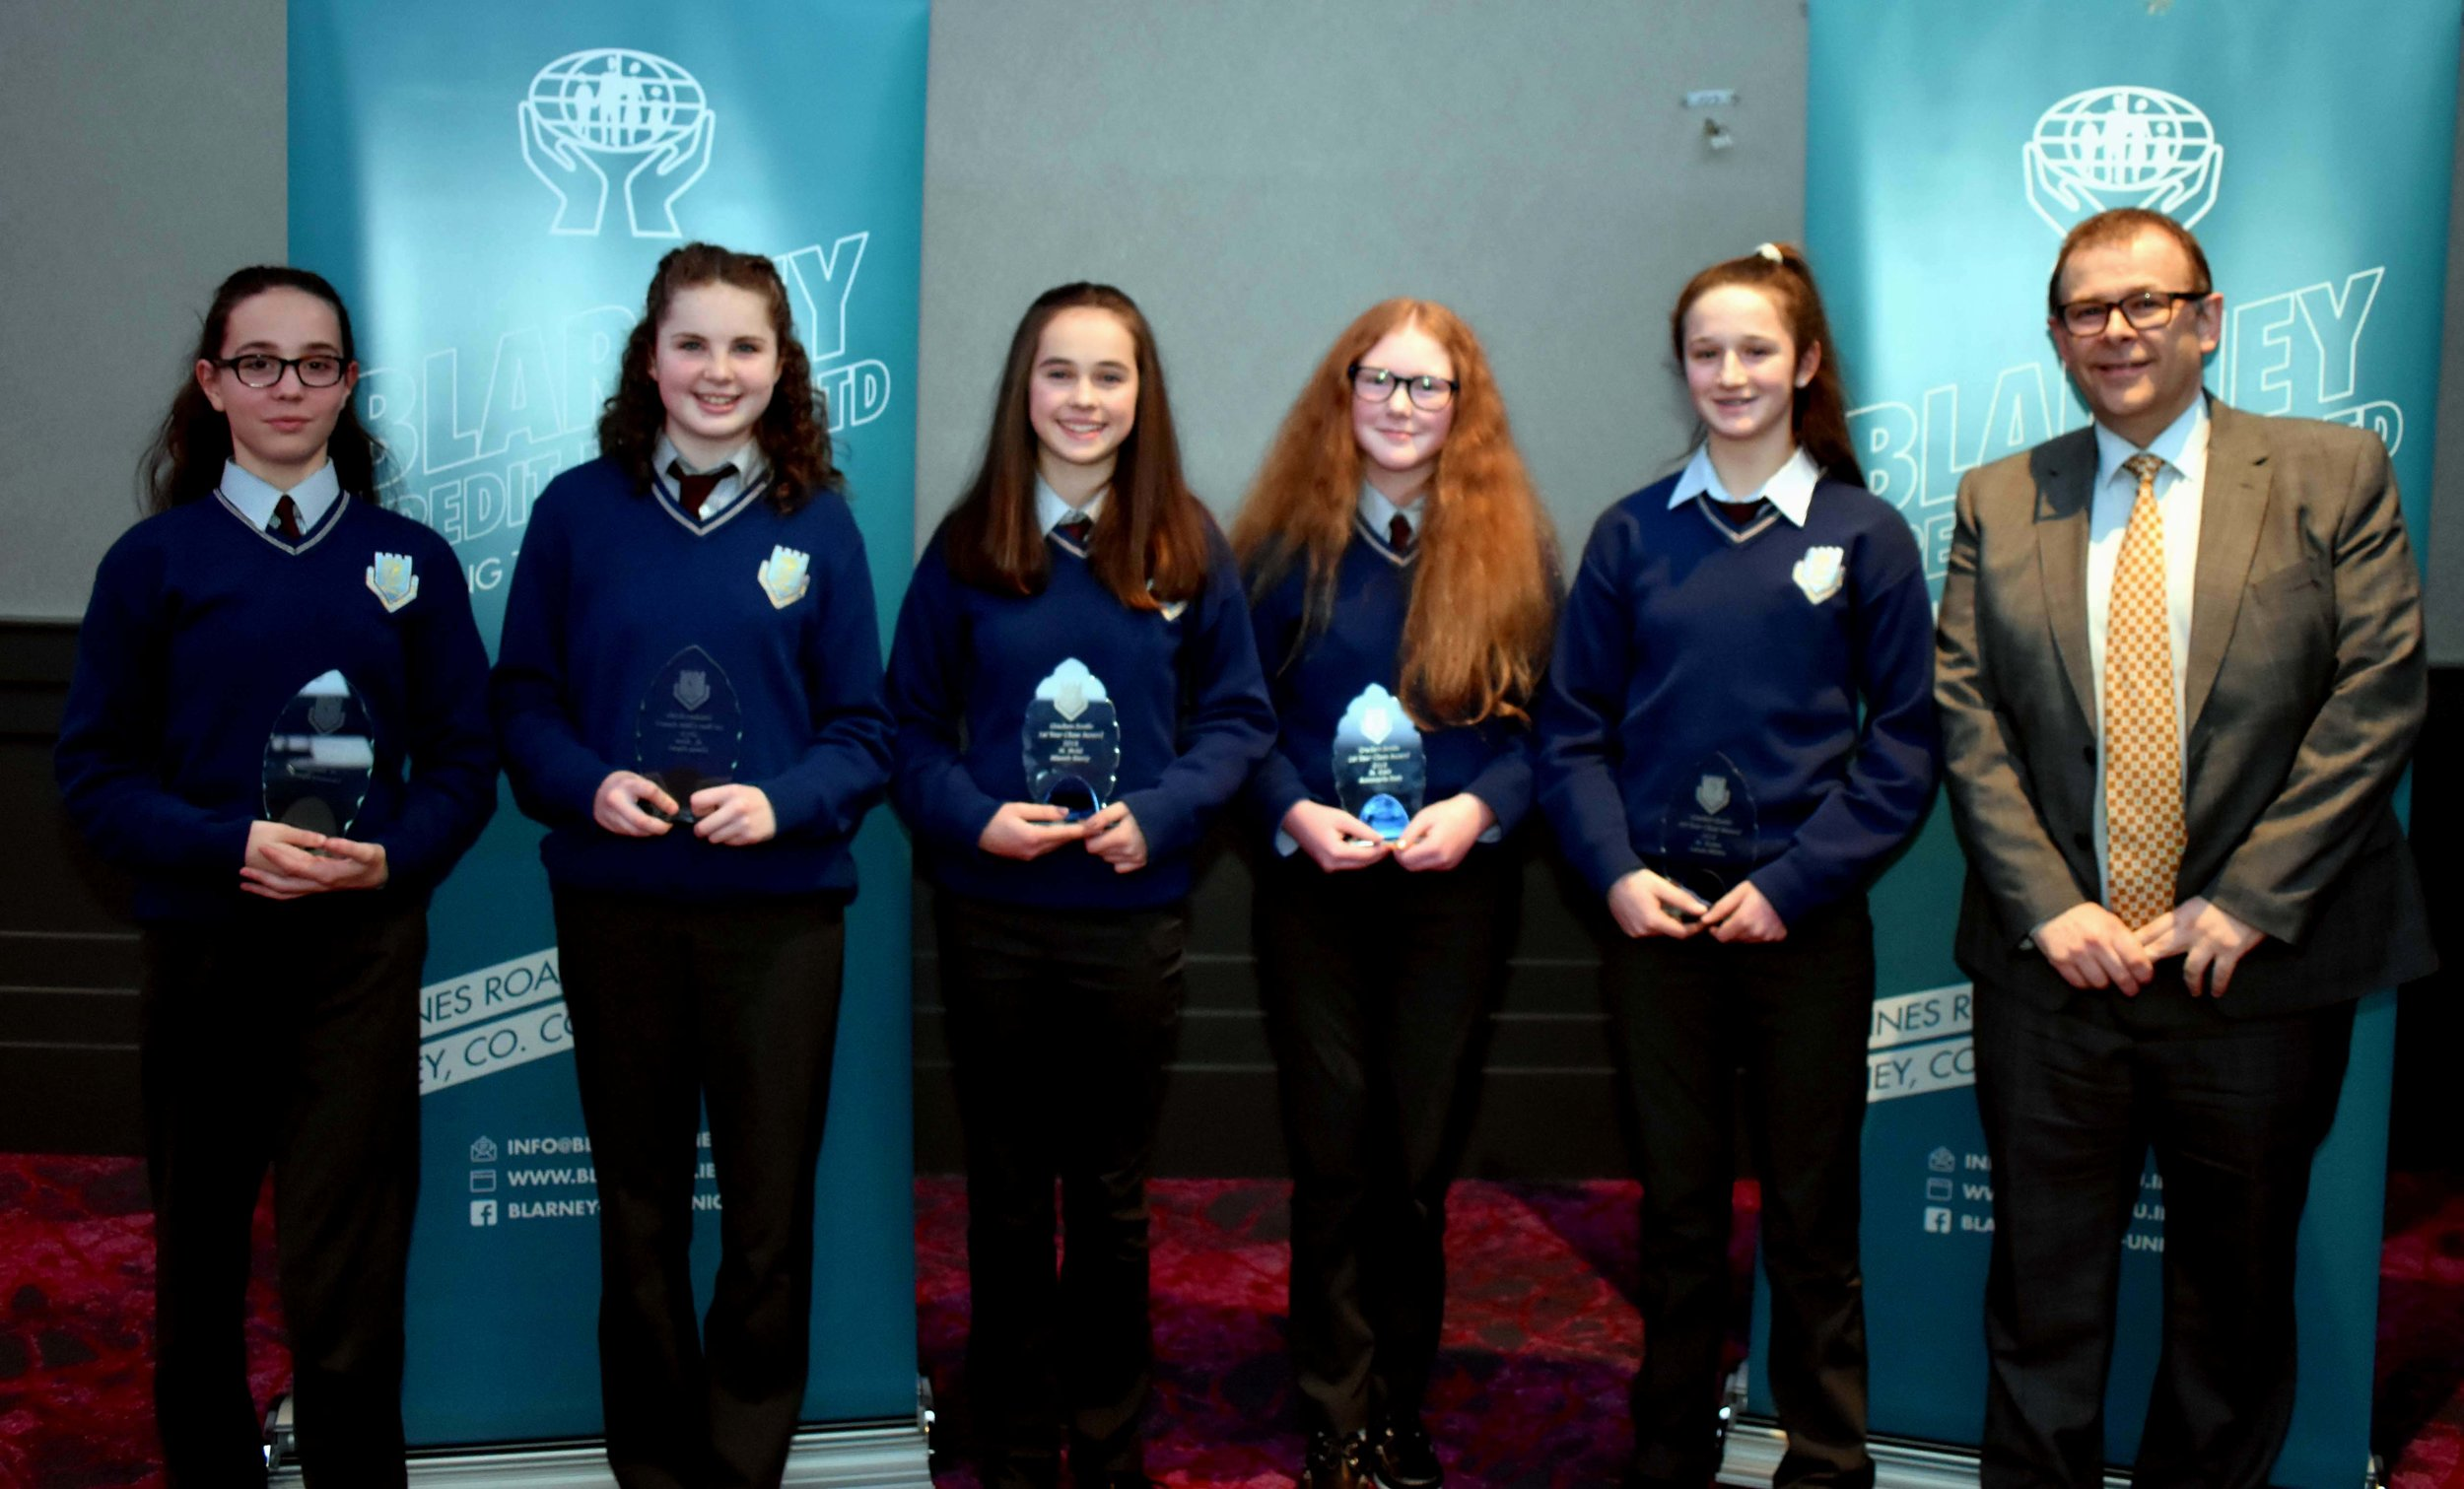 First Year Class Awards: Vanessa Byrne, Chloe Flynn, Niamh Barry, Annmarie Kett and Laura Shine (Pictured with Mark McGloughlin - BOM and Blarney Credit Union)